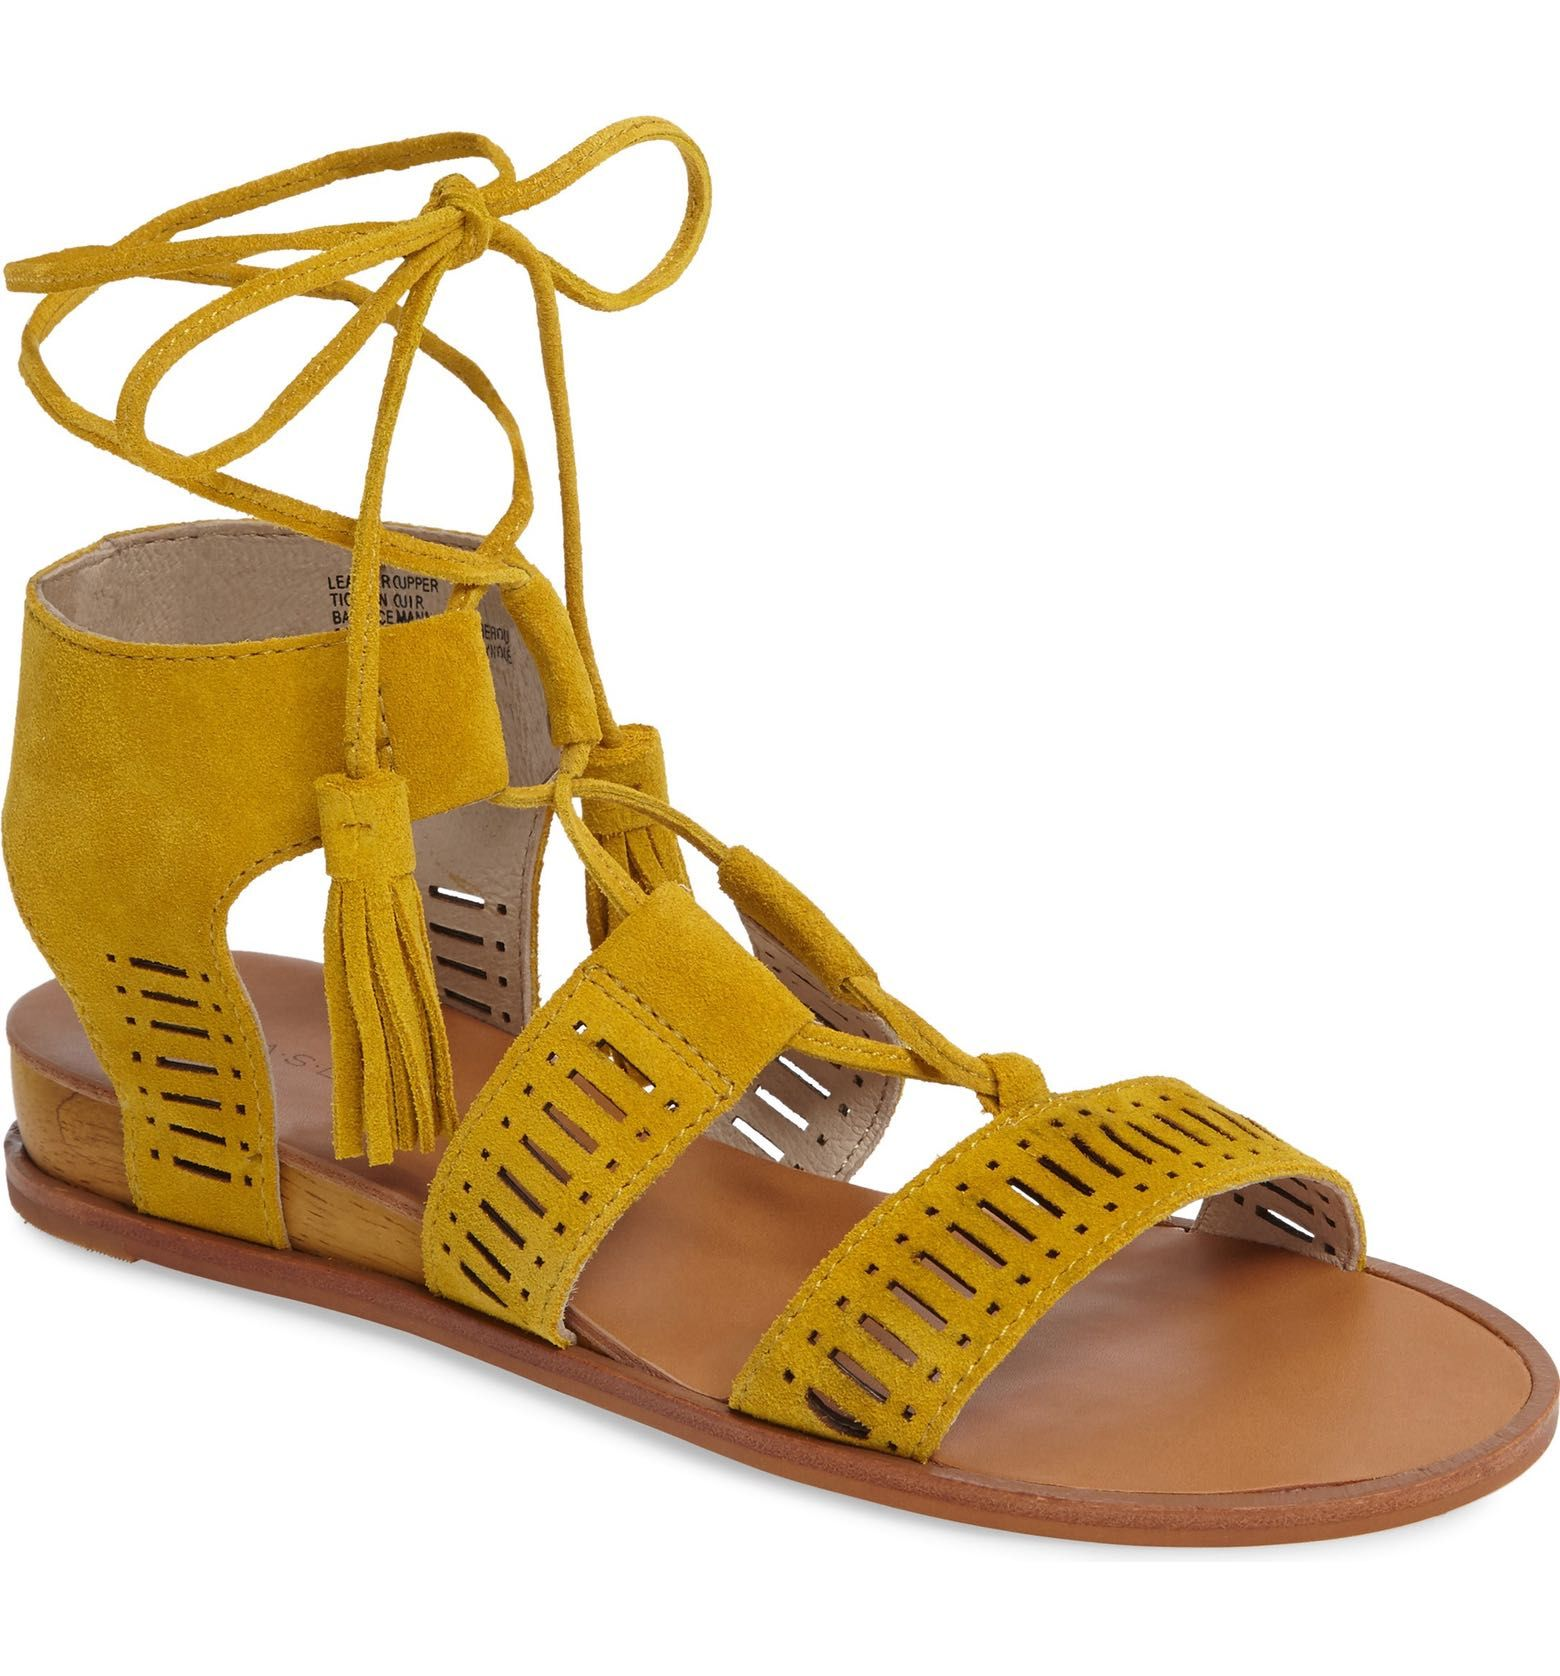 Caslon - Gilda Sandal in mustard yellow suede (Women) | starting in size 4